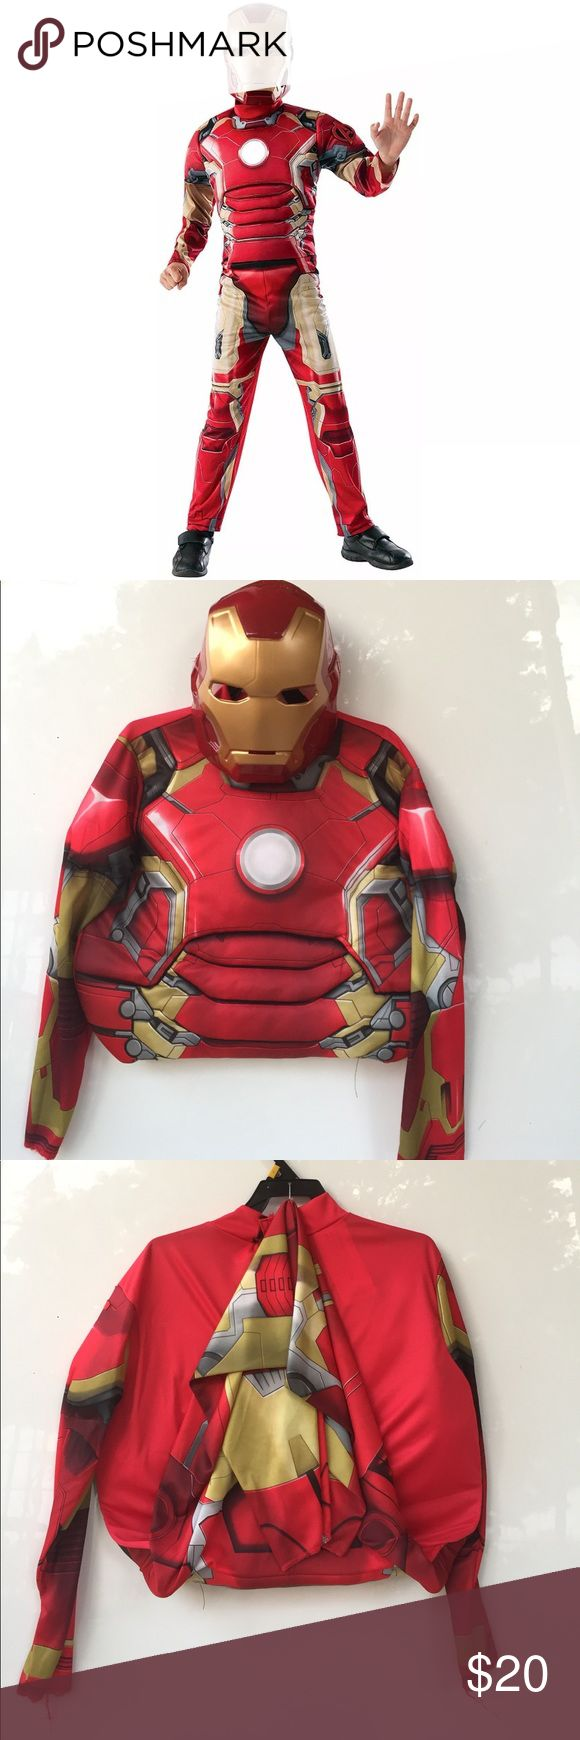 Iron Man Muscle Chest Jumpsuit Boys Costume Muscle Chest